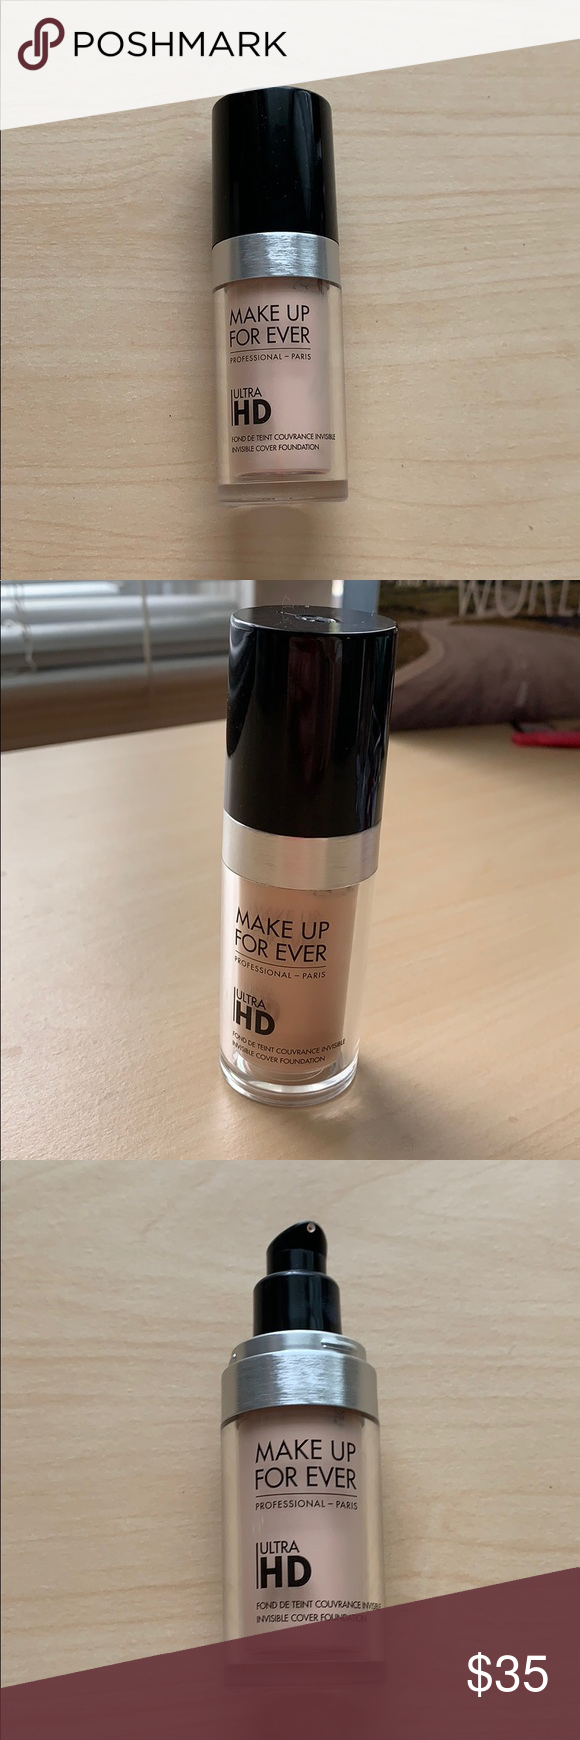 Make Up Forever Ultra HD foundation in 2020 Sephora